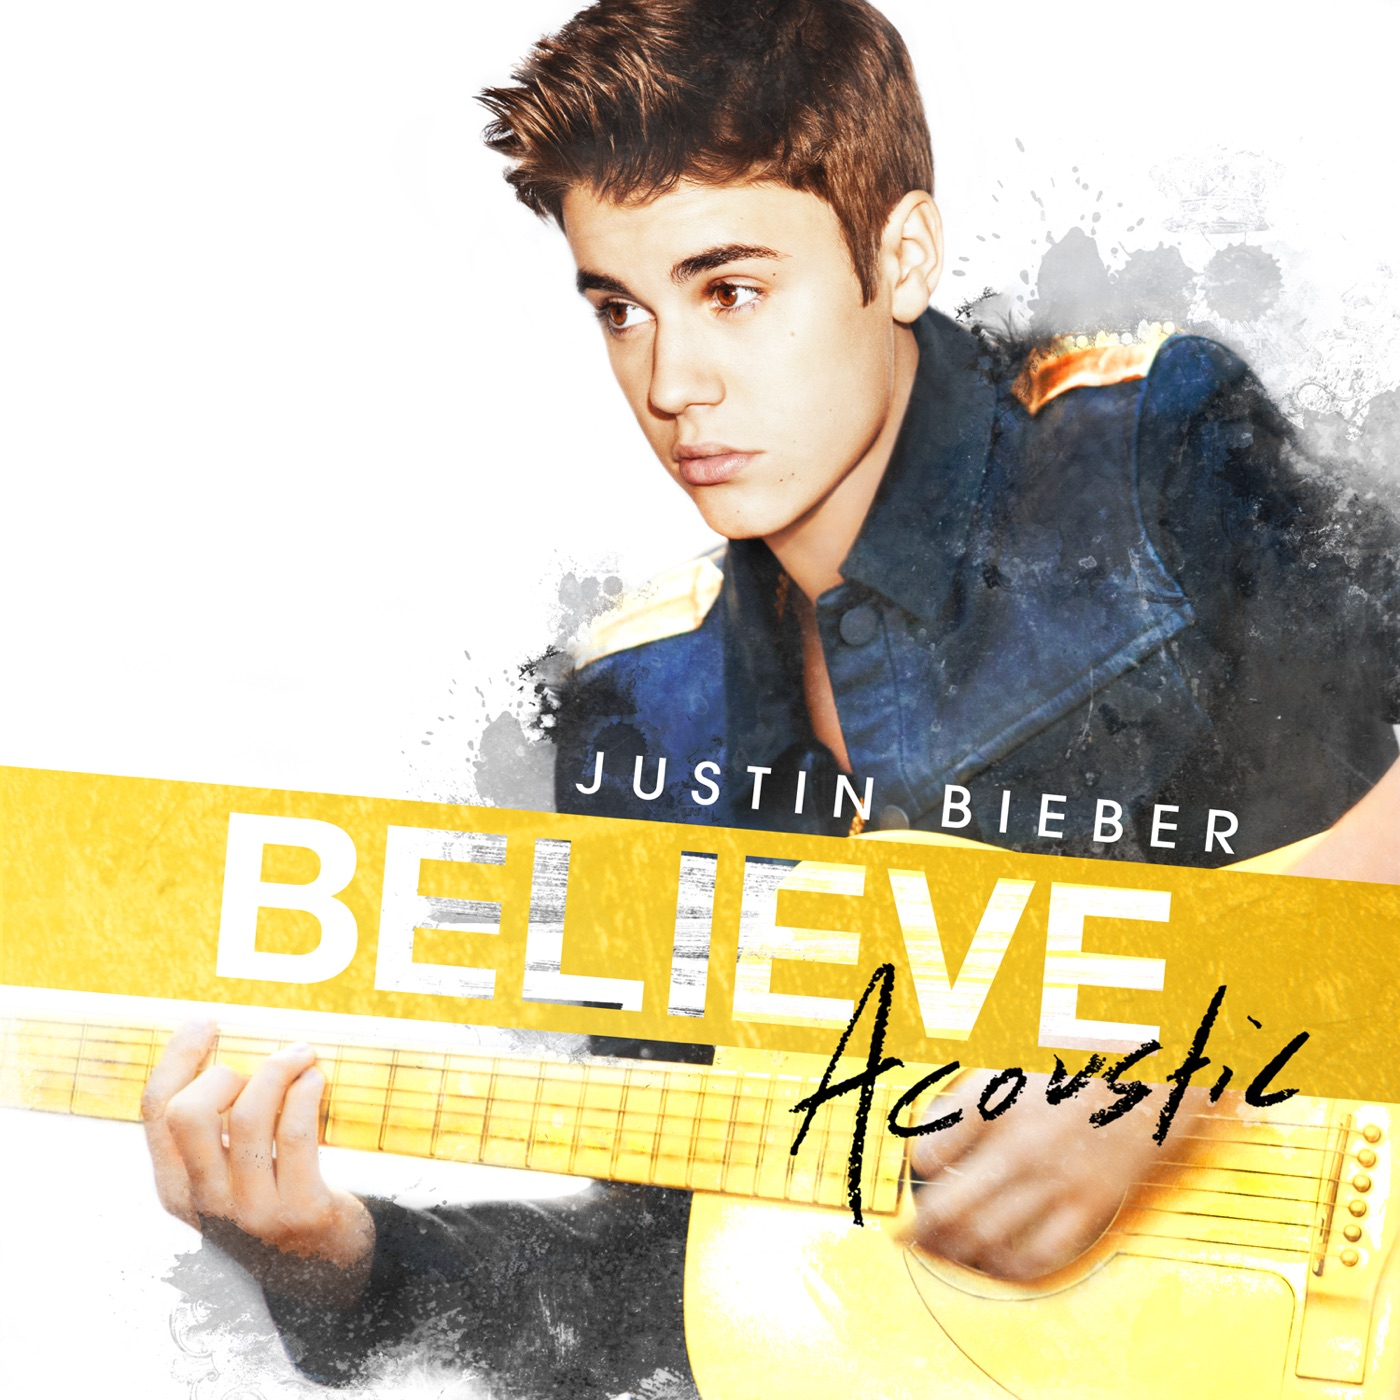 Justin Bieber - Believe Acoustic Cover